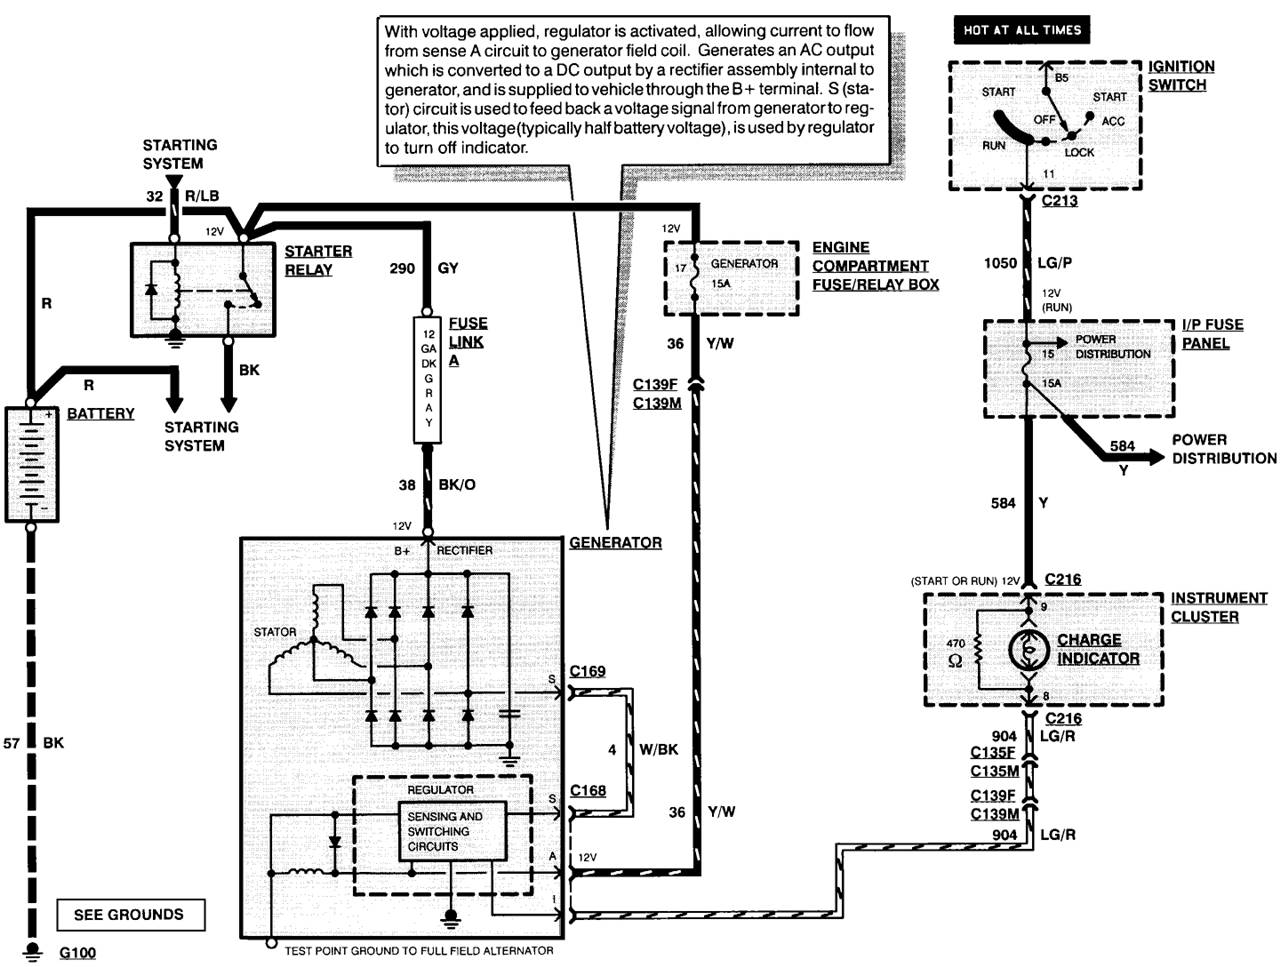 Wondrous 1983 Ford Bronco Wiring Diagram Today Diagram Data Schema Wiring Cloud Ittabisraaidewilluminateatxorg